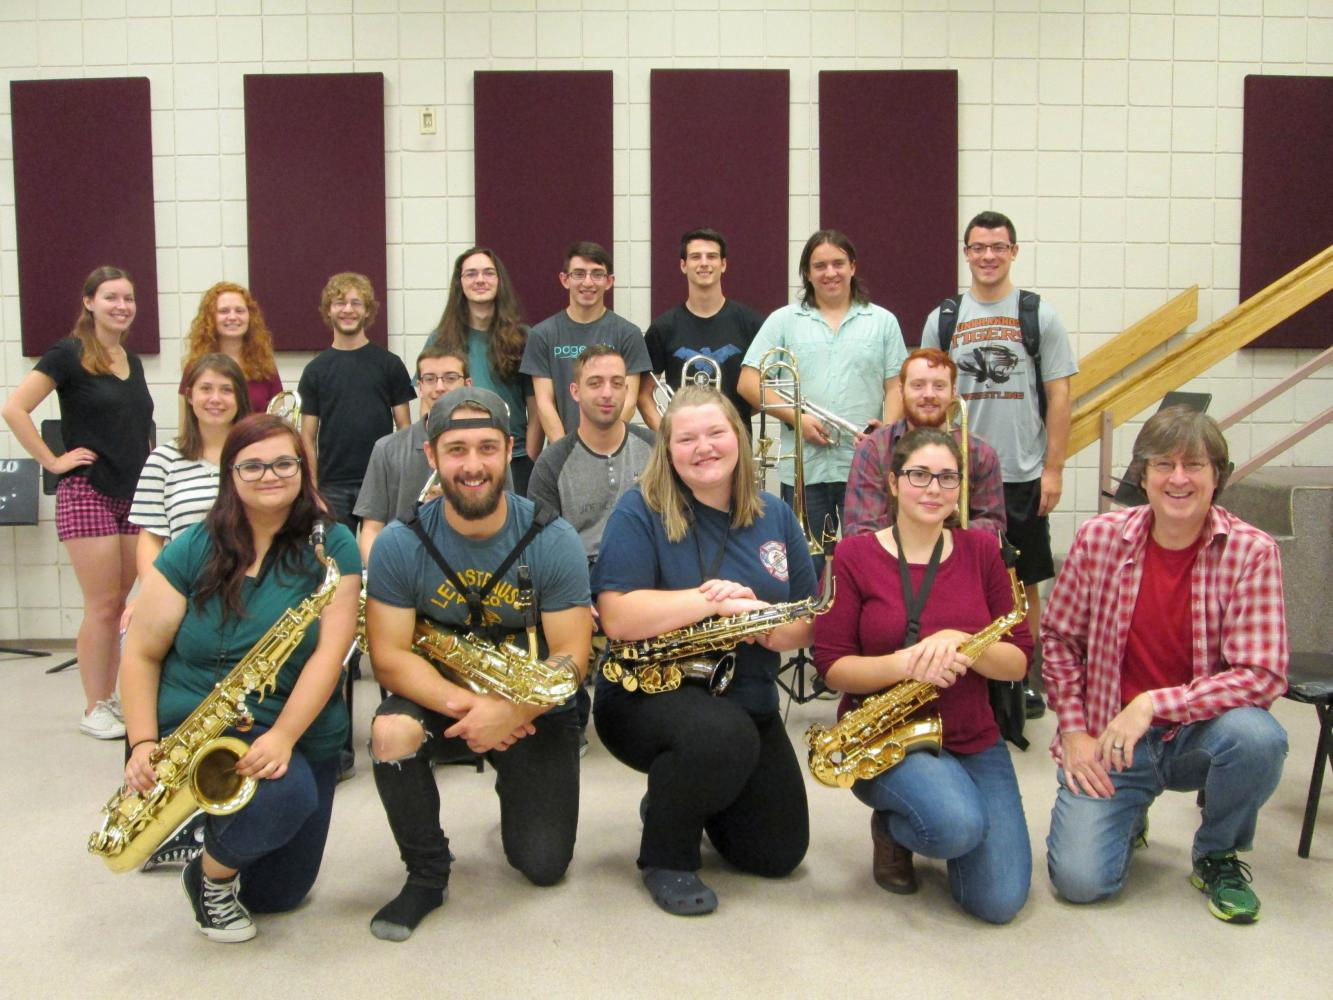 The Mercyhurst Jazz Ensemble consists of music and non-music majors and is led by Scott Meier, Ph.D.